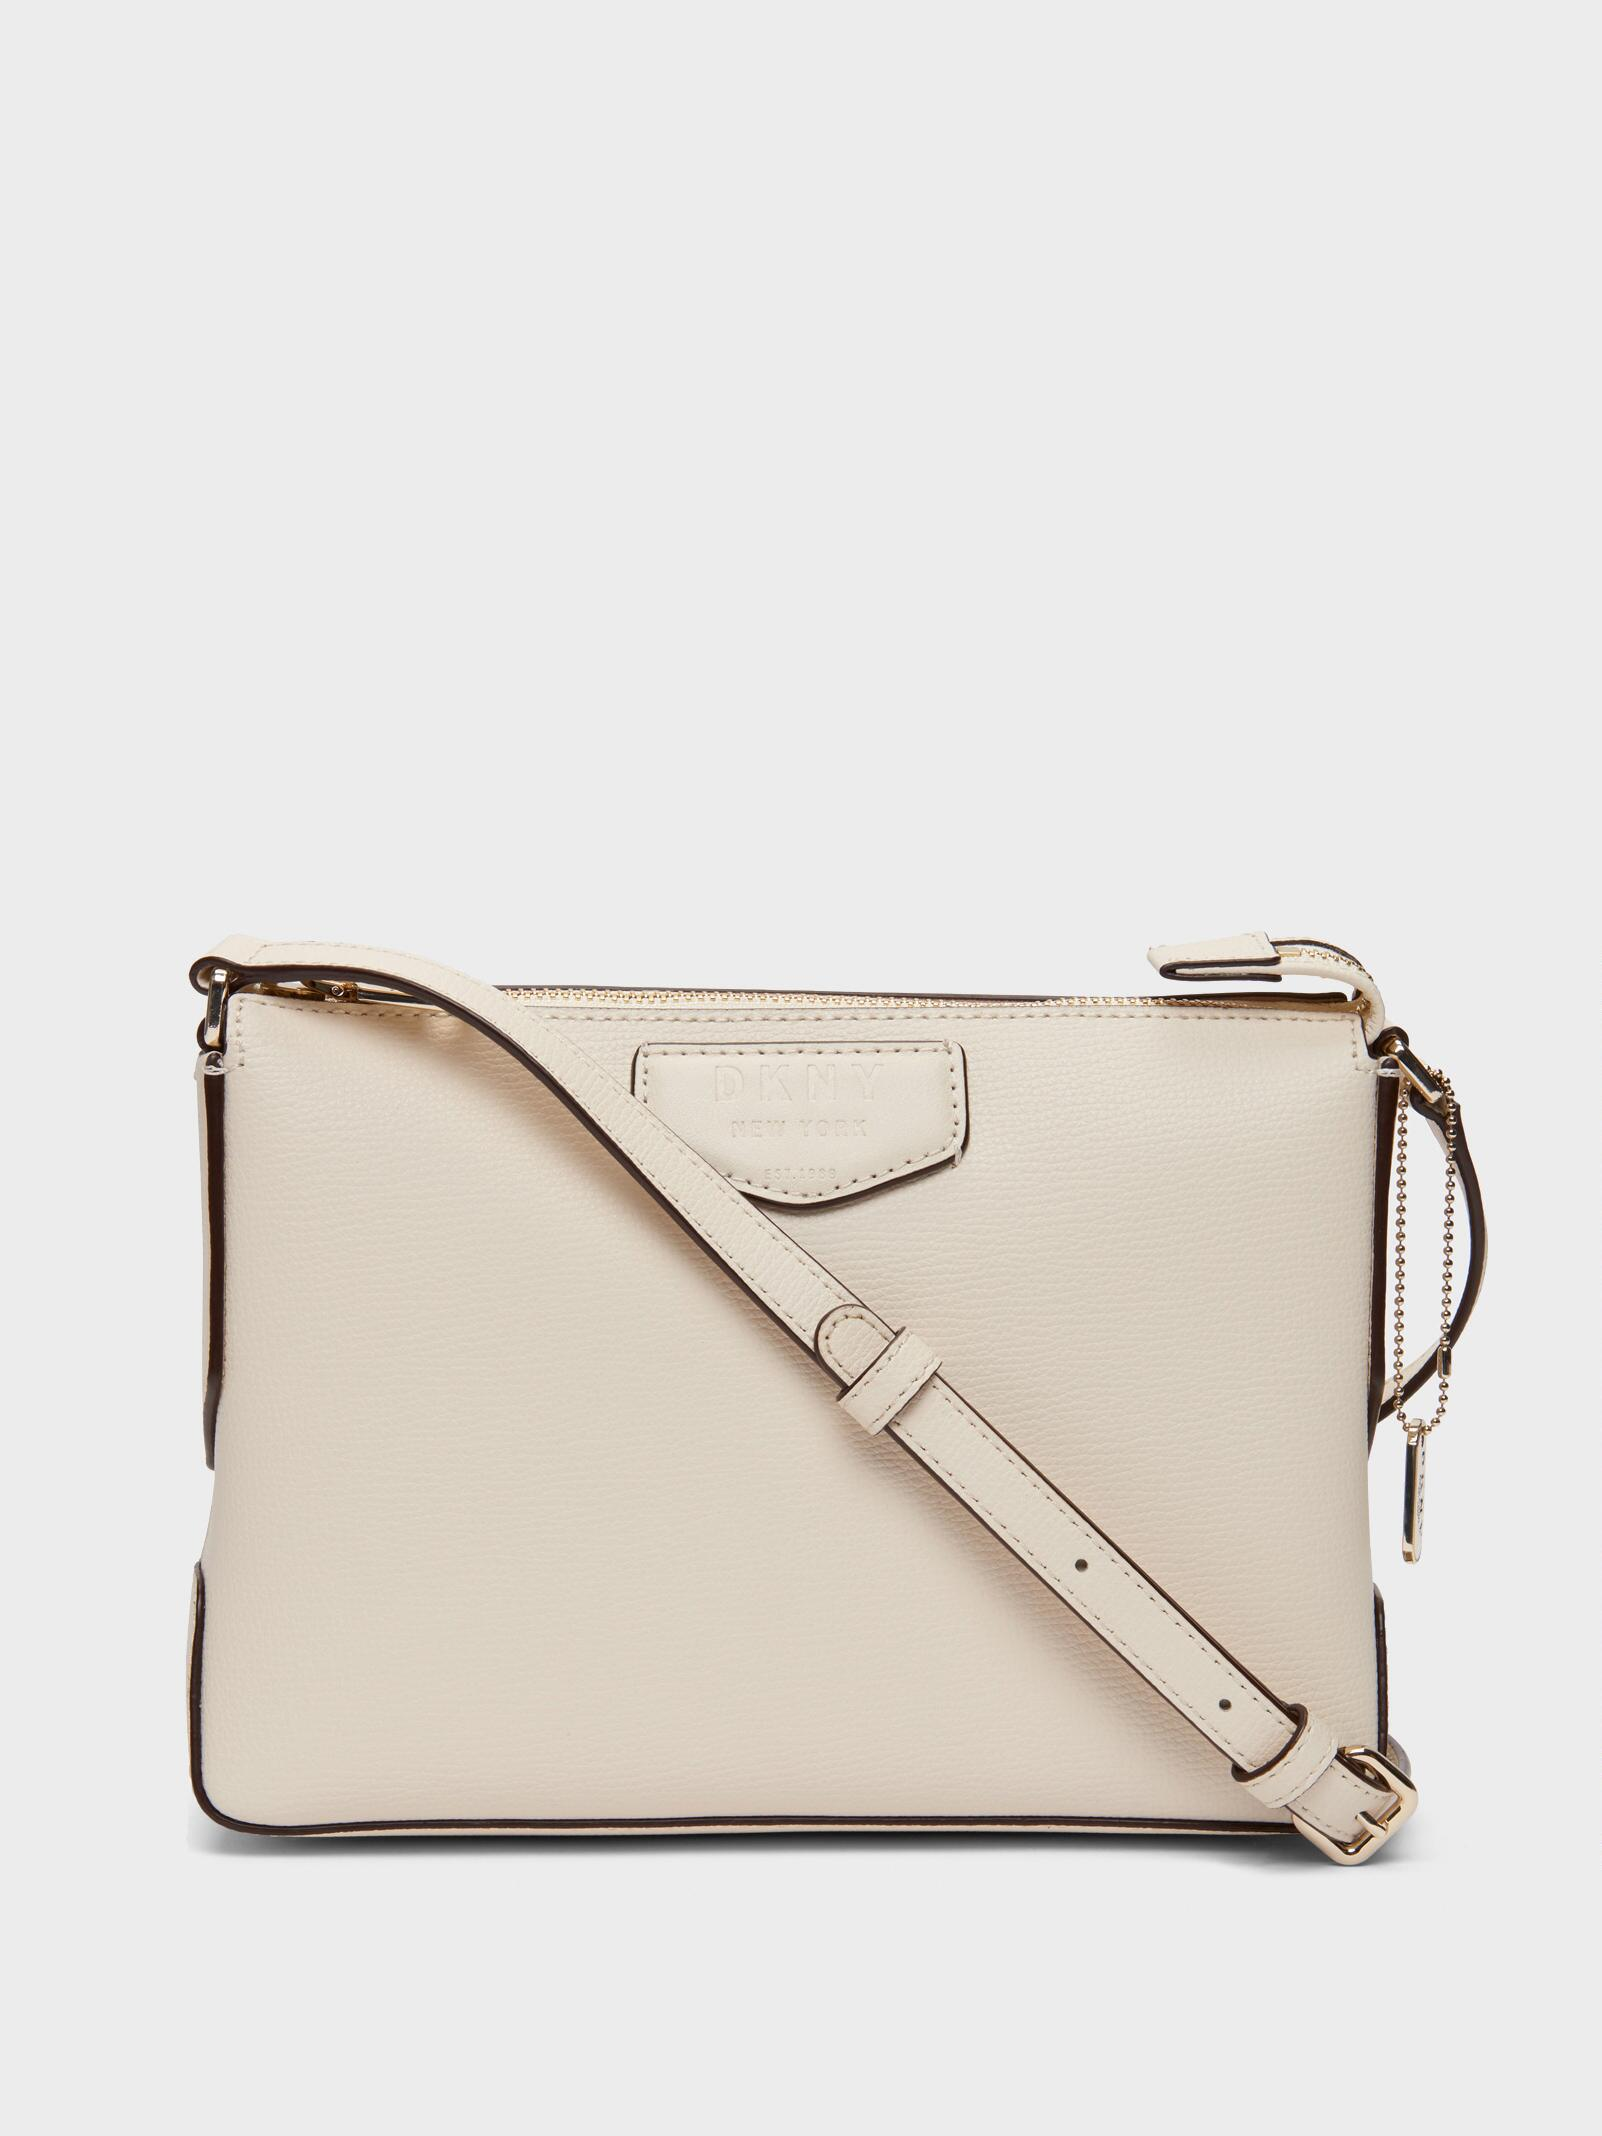 eee3d912a3 Lyst - DKNY Sullivan Leather Crossbody in White